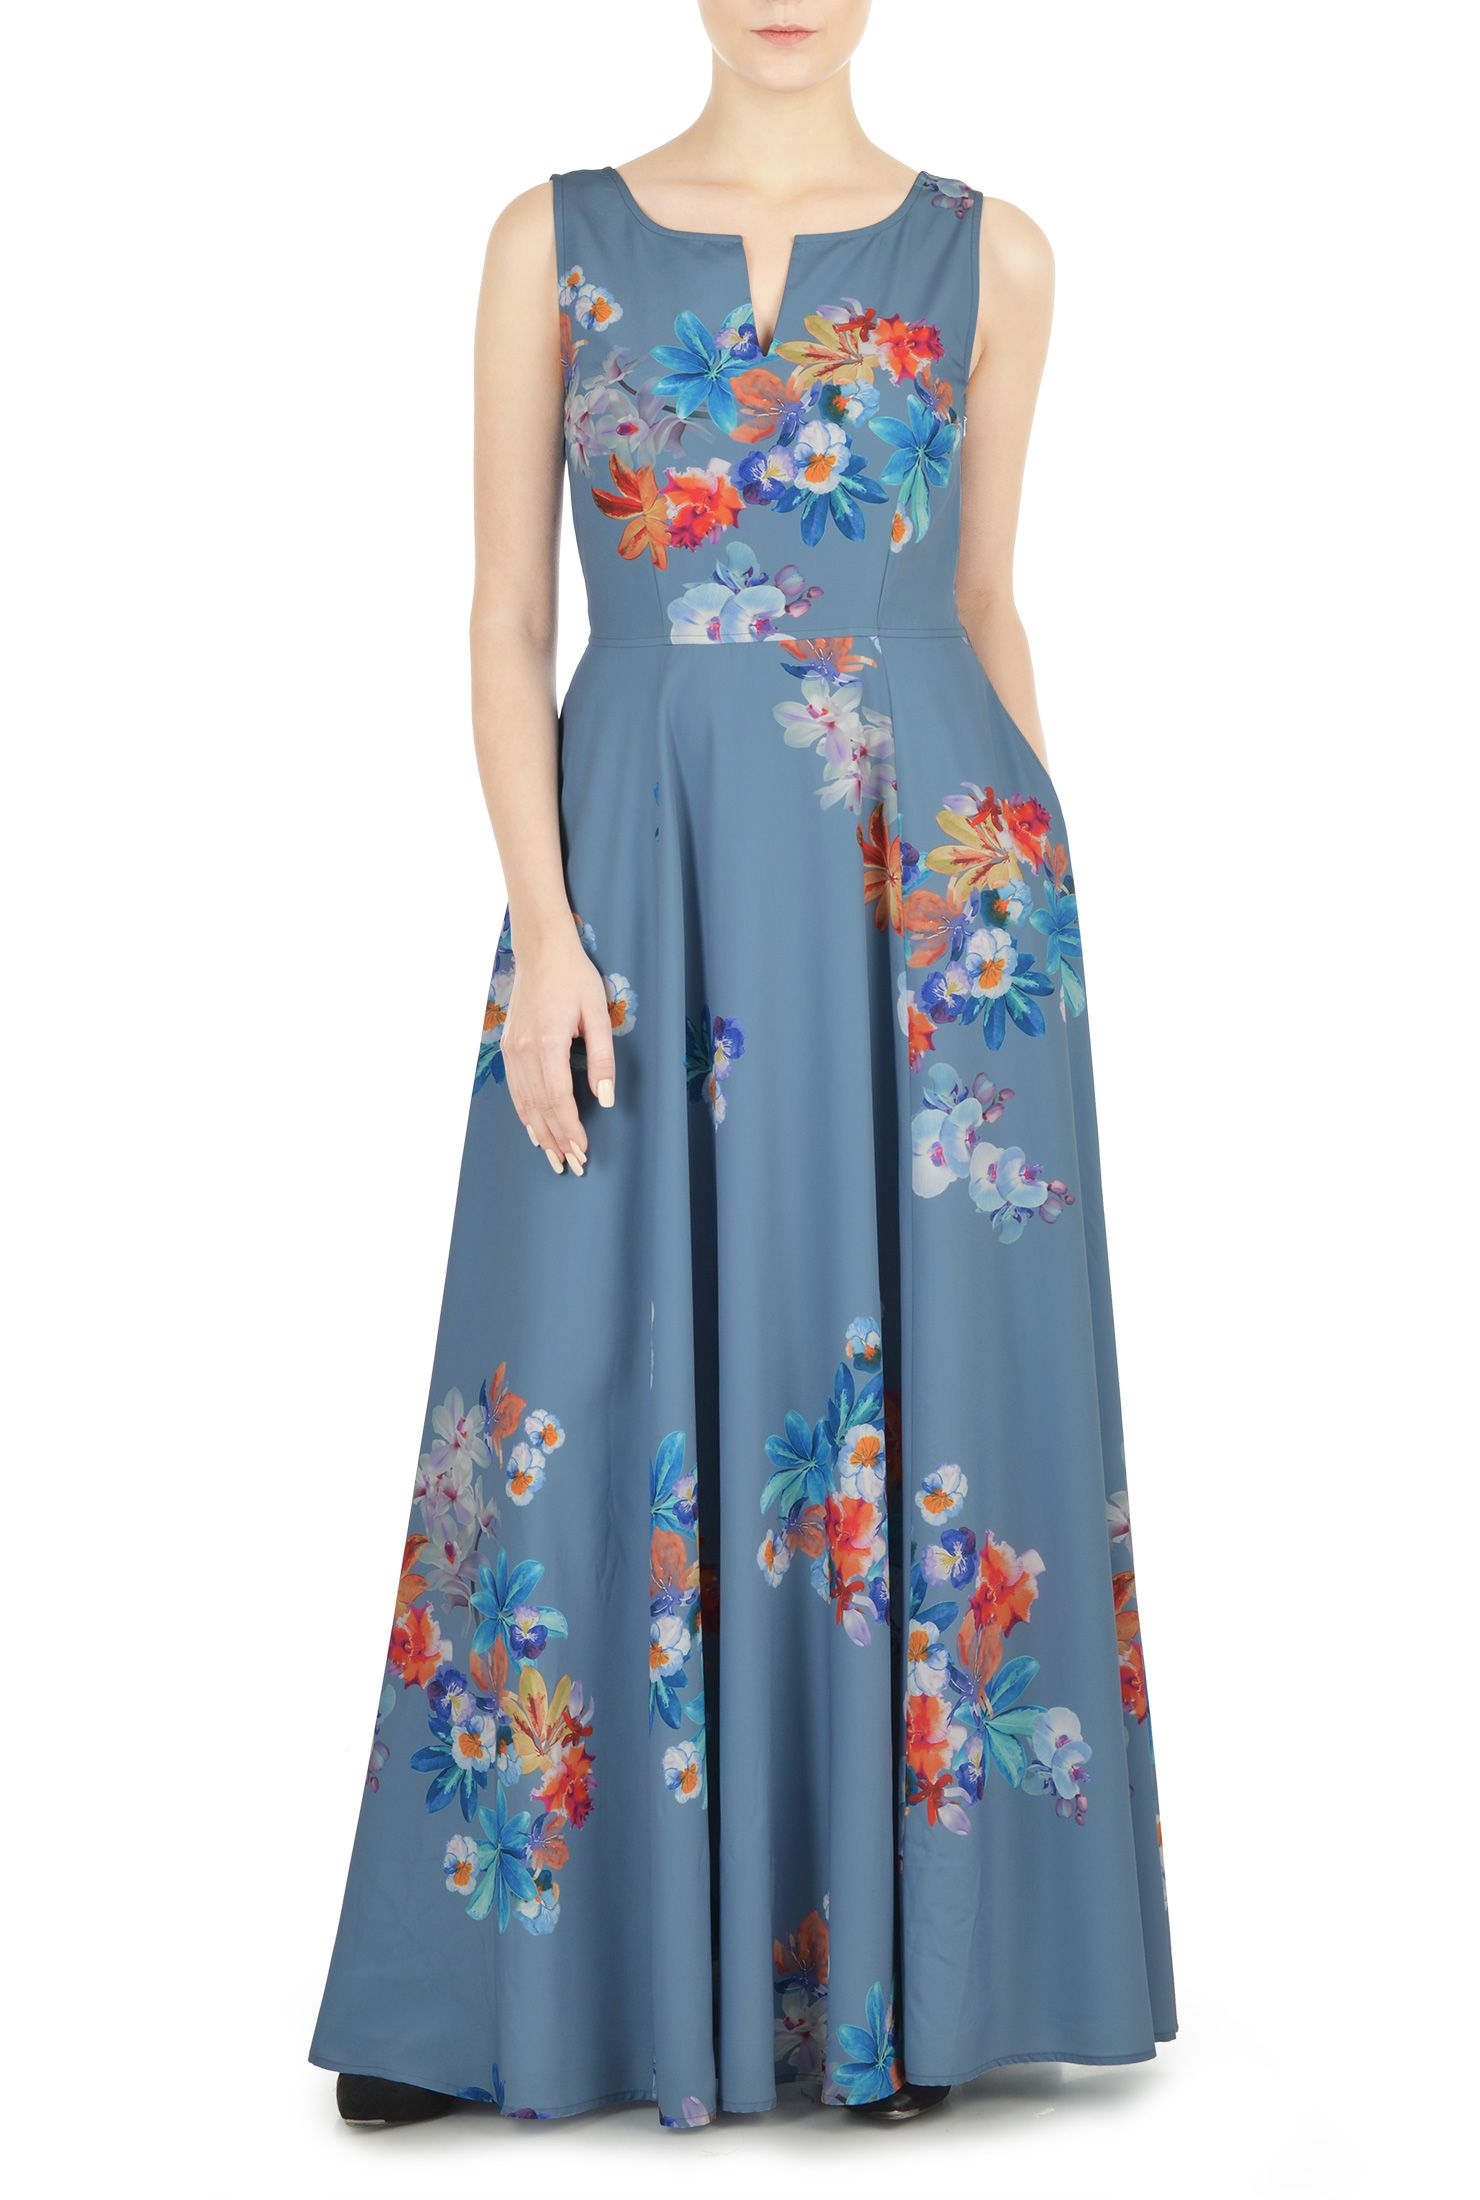 6ff62015c3f1 Painterly floral print sweetly patterns our flowy A-line maxi featuring a  split scoop neckline